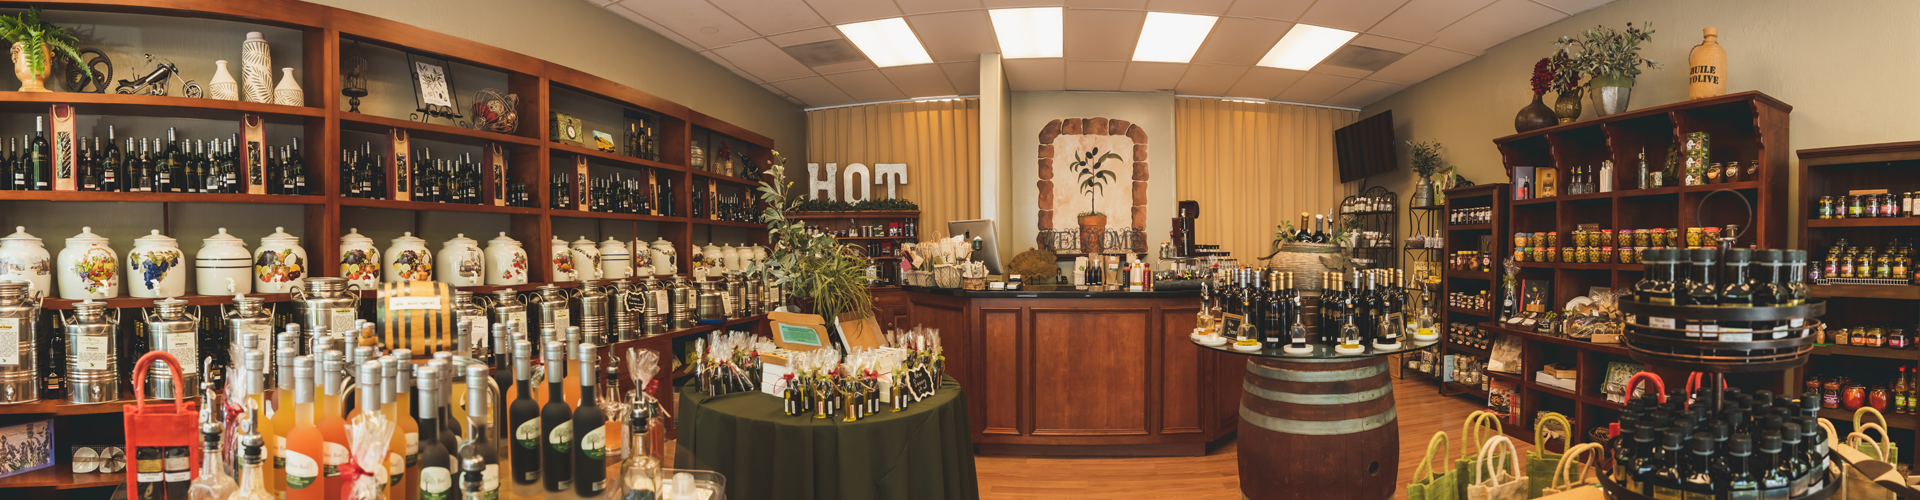 panorama view of the olive bar